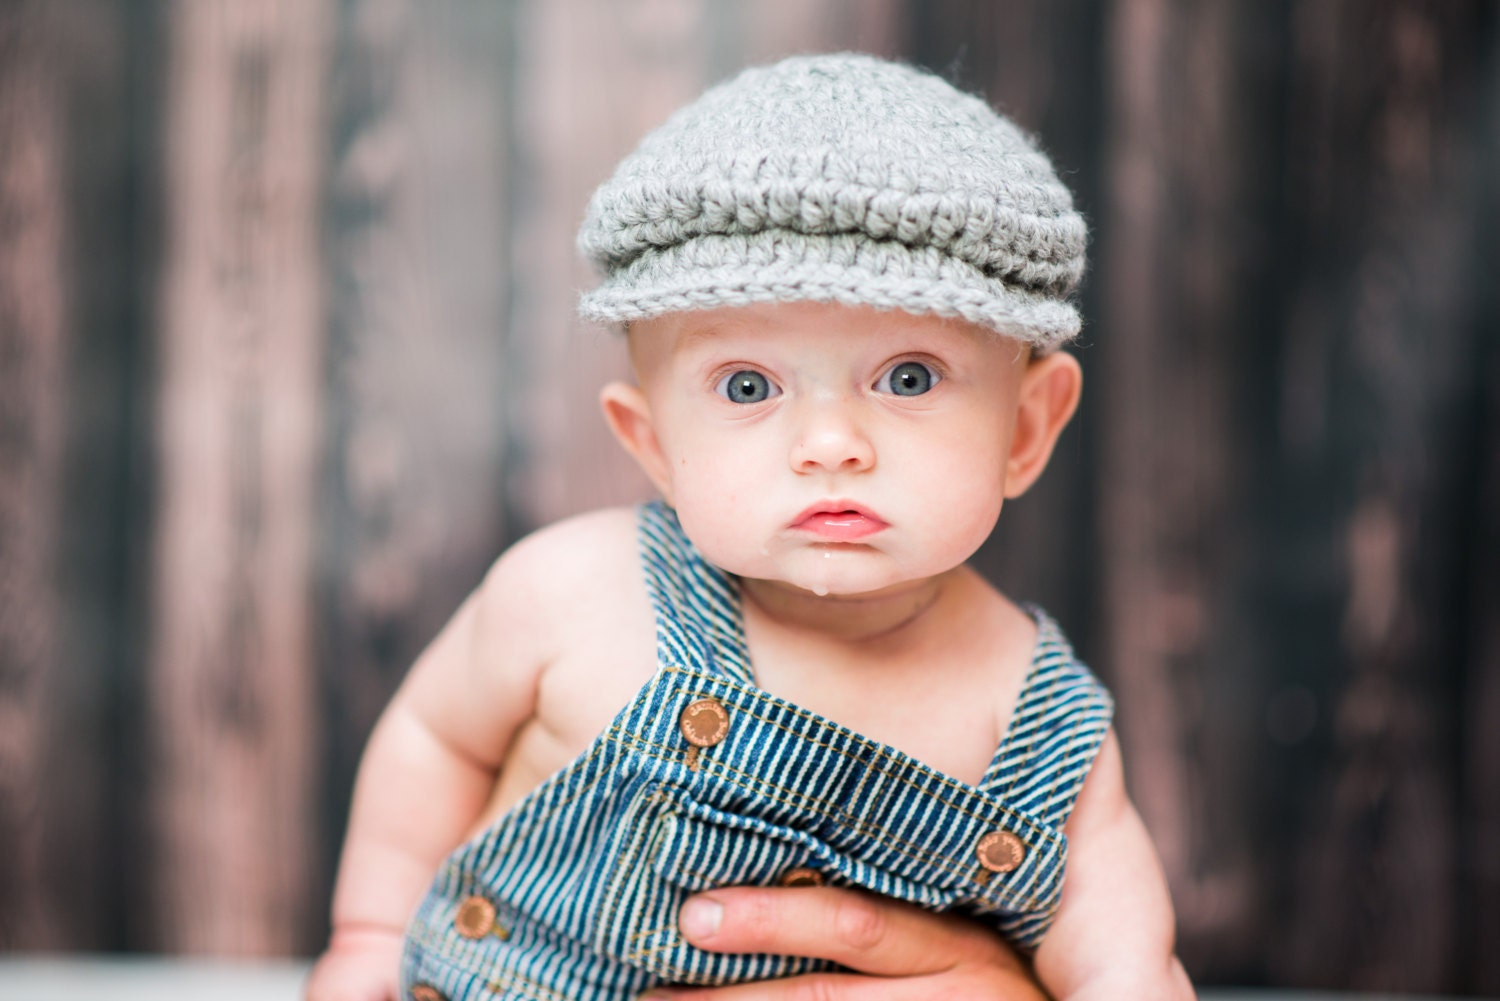 Shop for baby hats boys online at Target. Free shipping on purchases over $35 and save 5% every day with your Target REDcard. skip to main content skip to footer. Baby Boys' Geo Bright 3pk Hats - Cloud Island™ Turquoise.